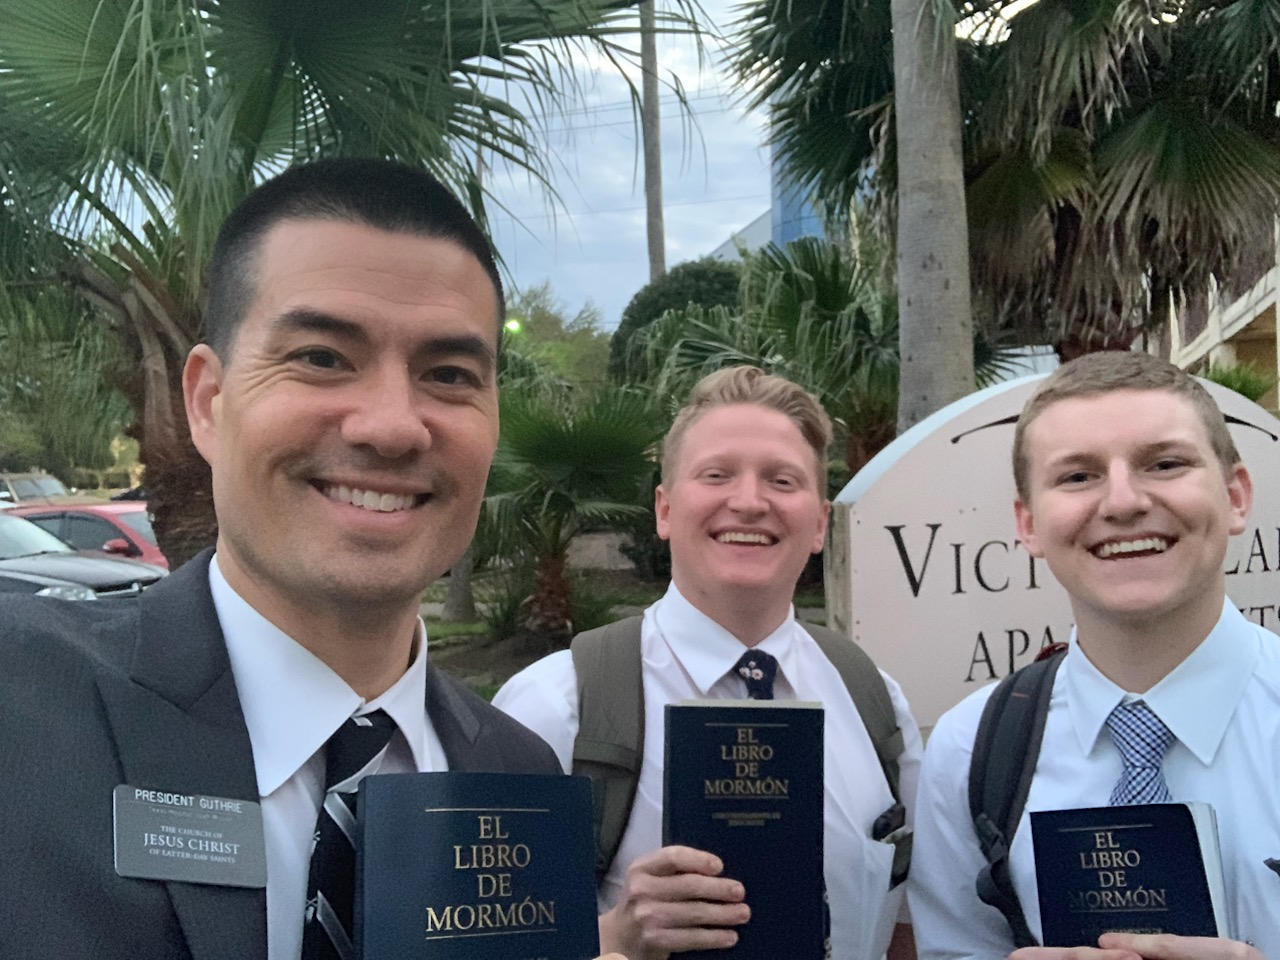 Texas Houston South Mission President Jeremy Guthrie joins full-time missionaries to share Spanish-language versions of the Book of Mormon. The former pro baseball player served a mission to Spain.